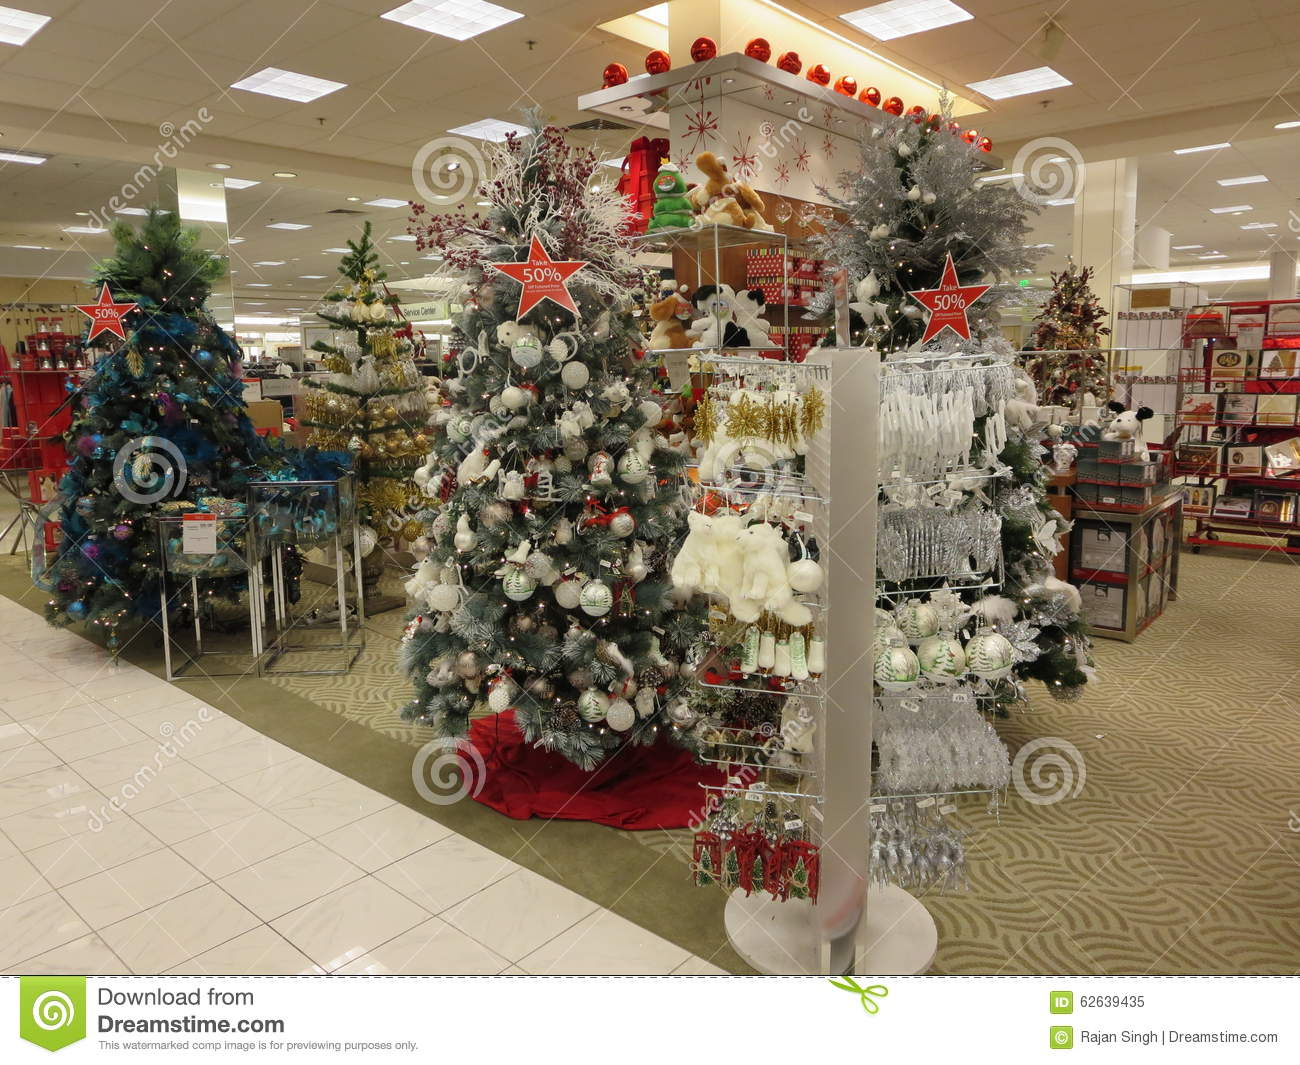 decorated christmas tree ornaments display for sale in a mall